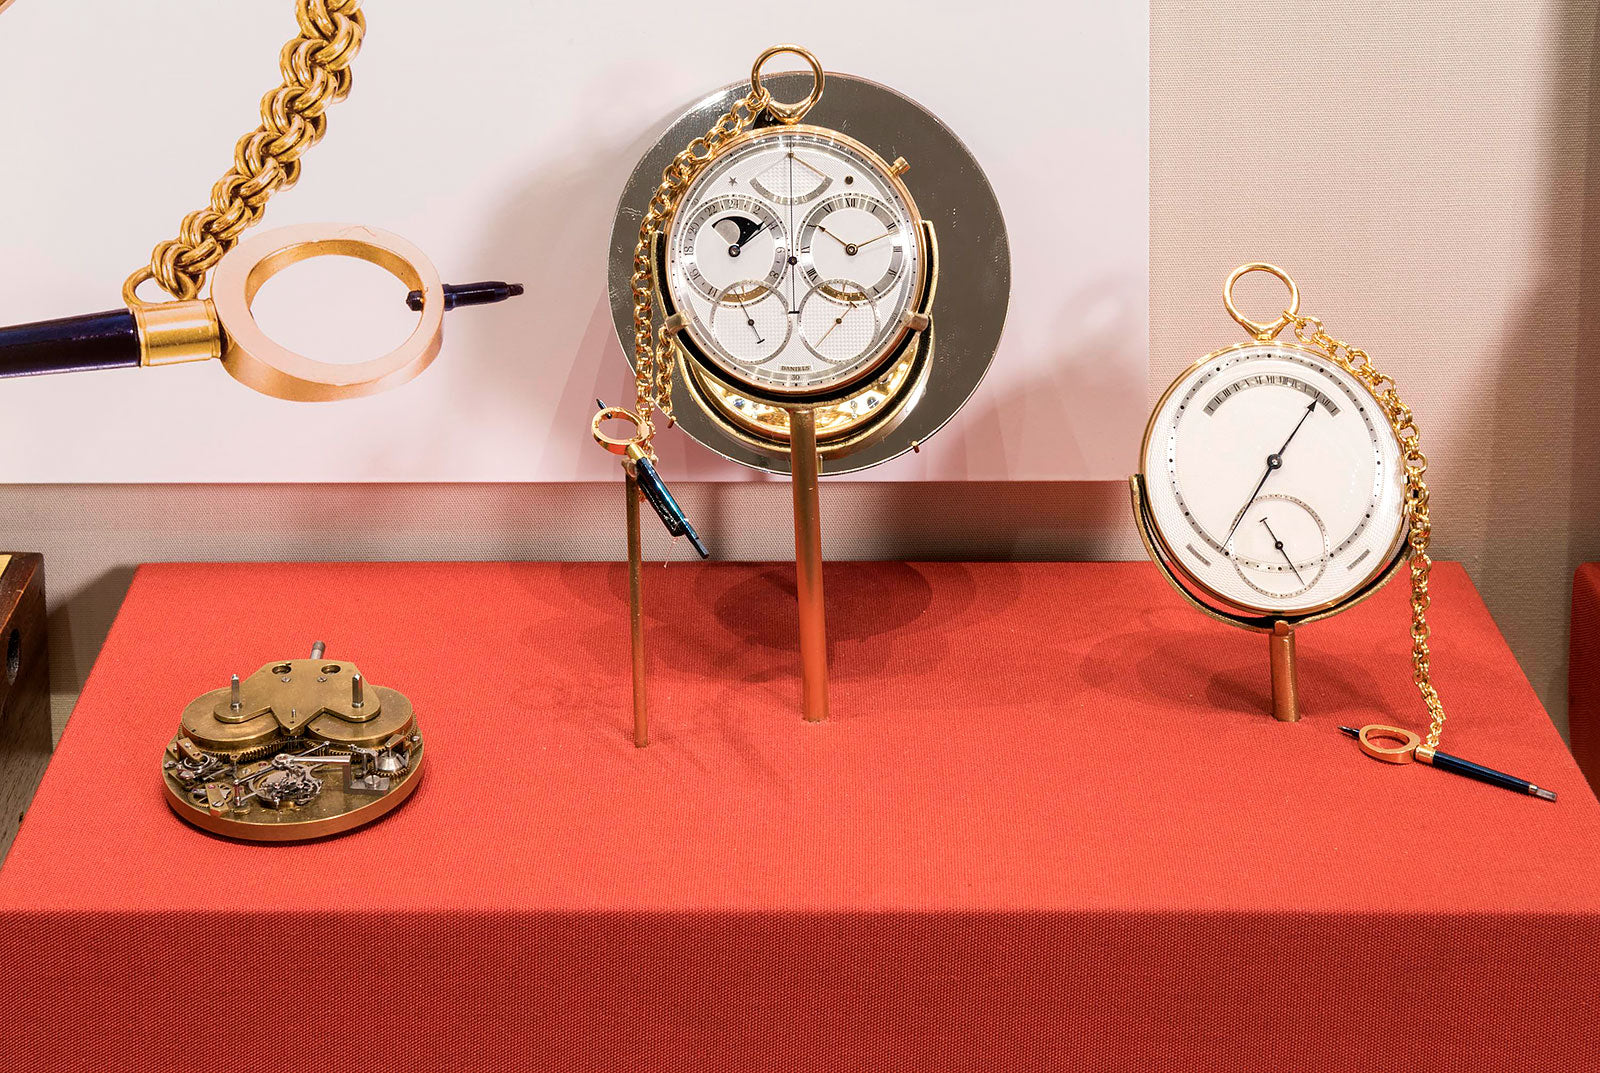 Display at Science Museum of Daniels watches in Three Watchmakers' Unfinished Watches for A Collected Man London